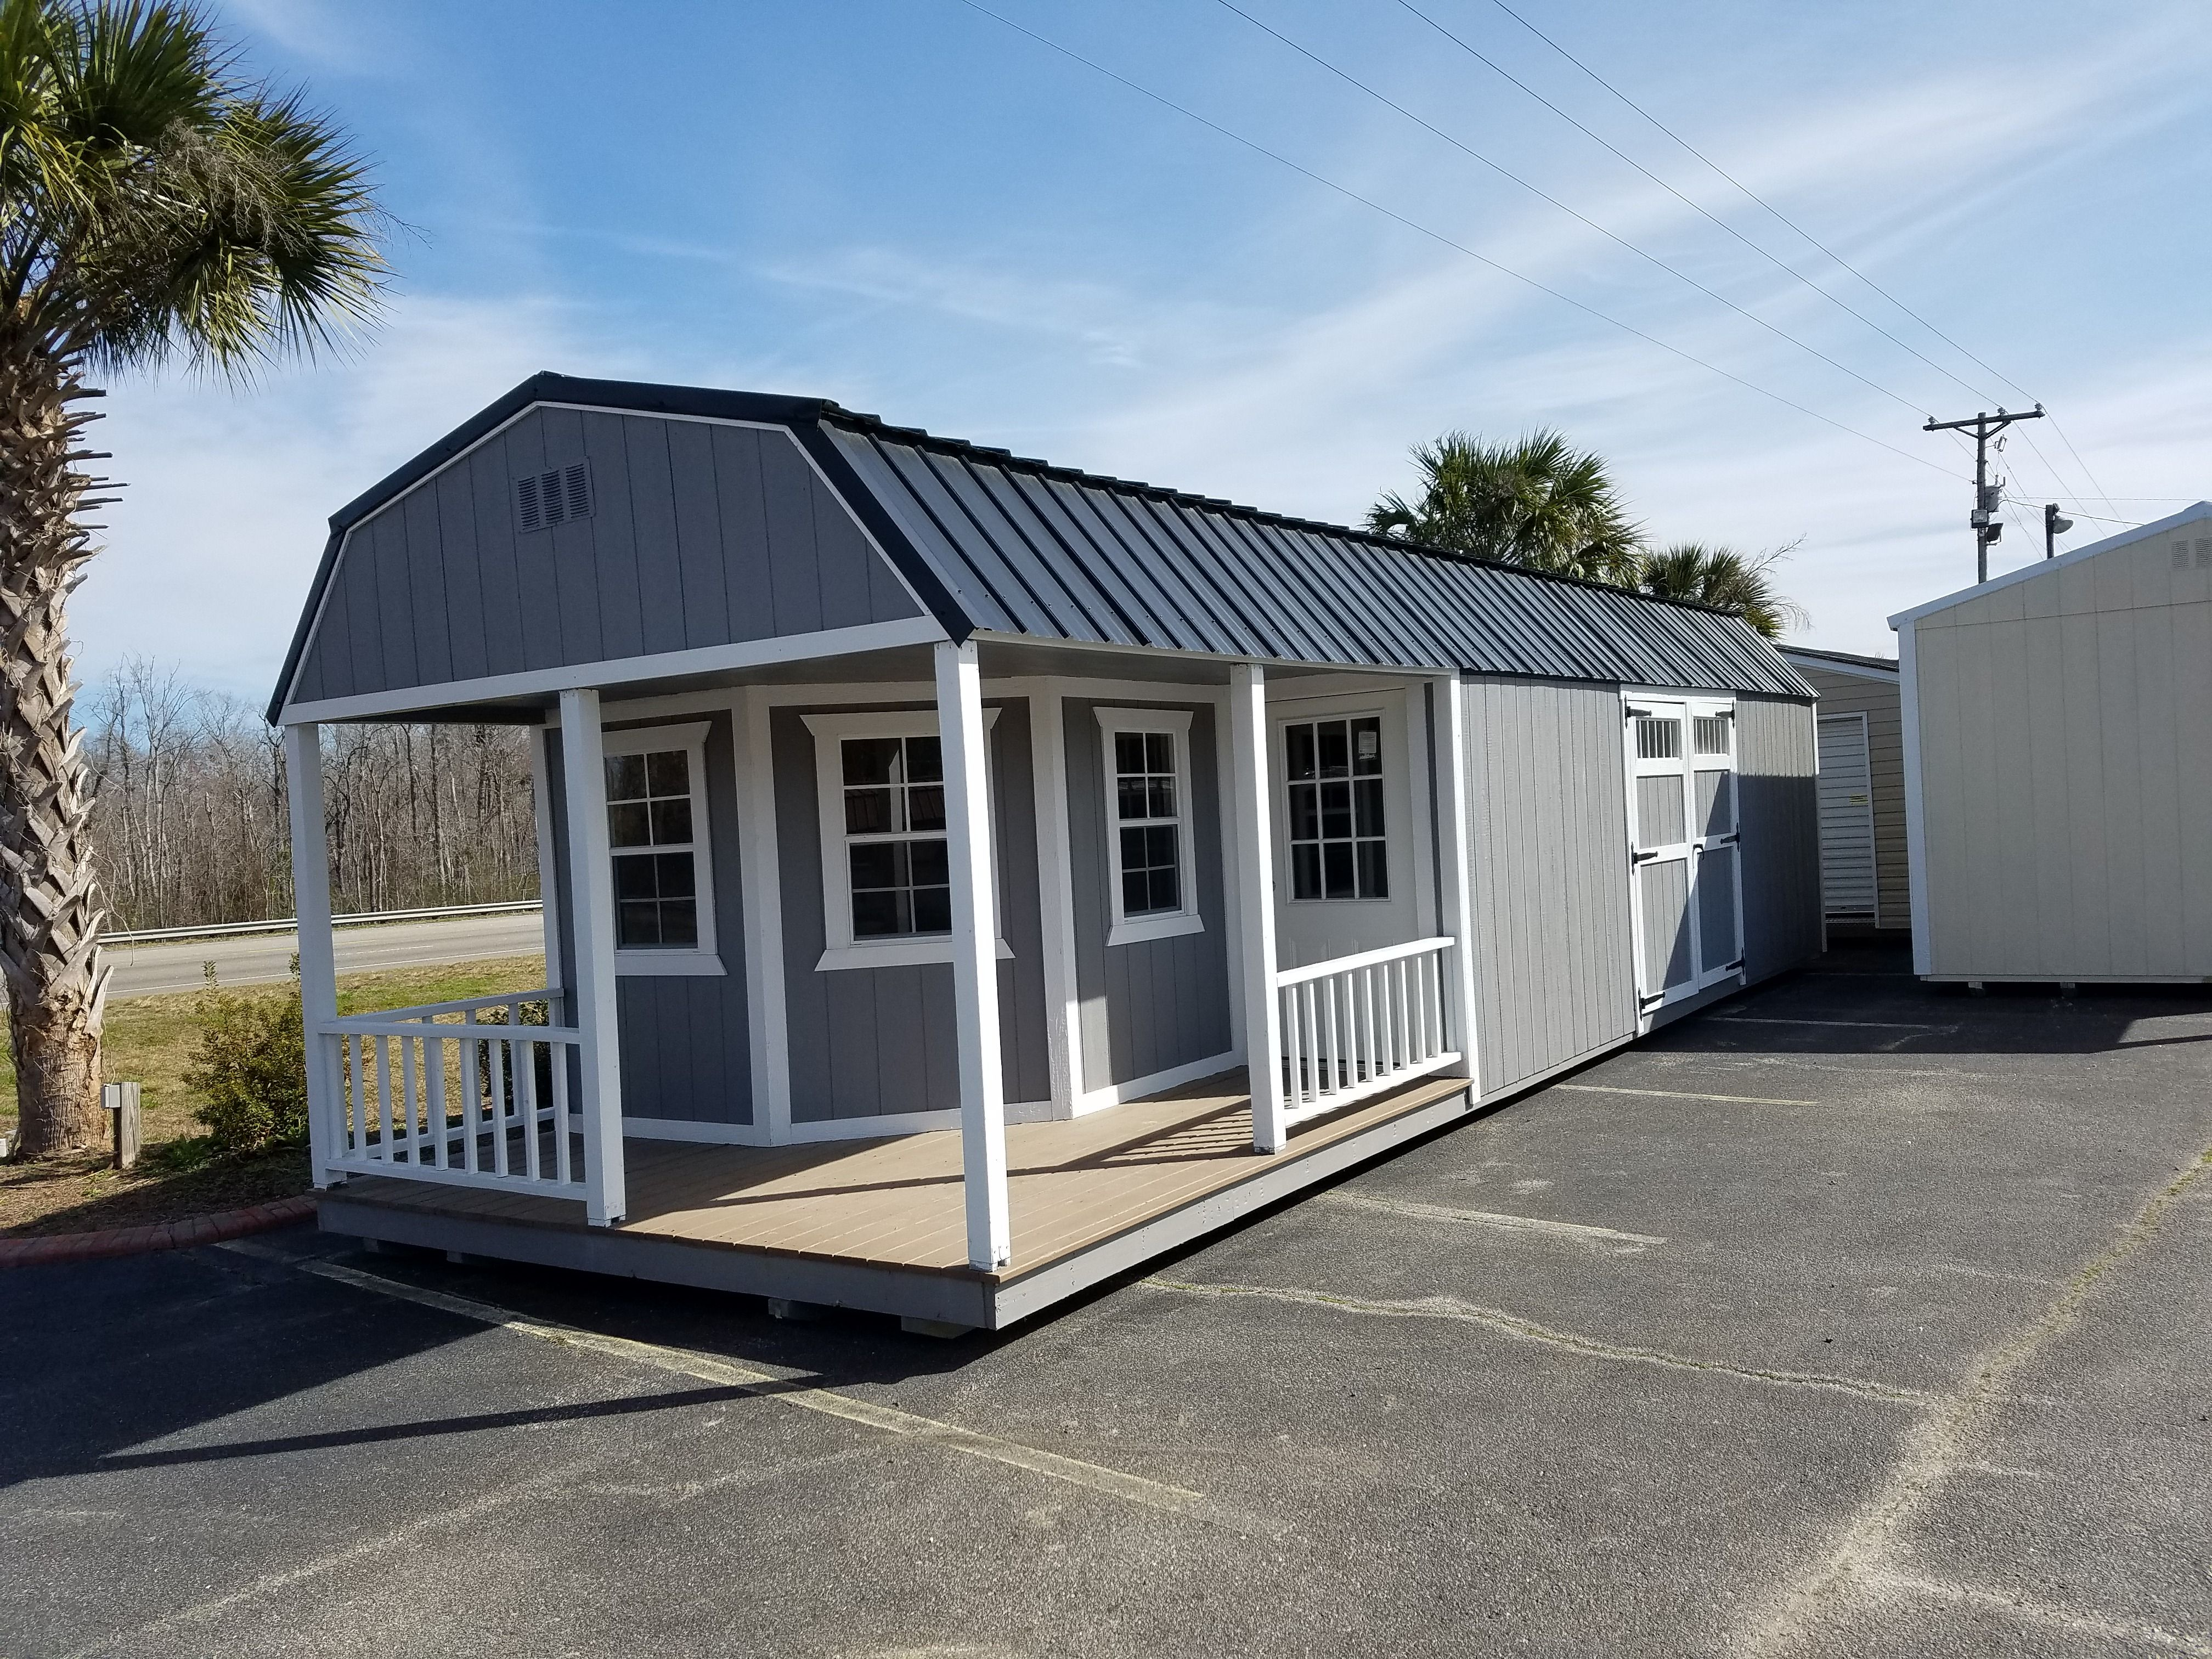 We have some of all. From barns, carports, garages, wood